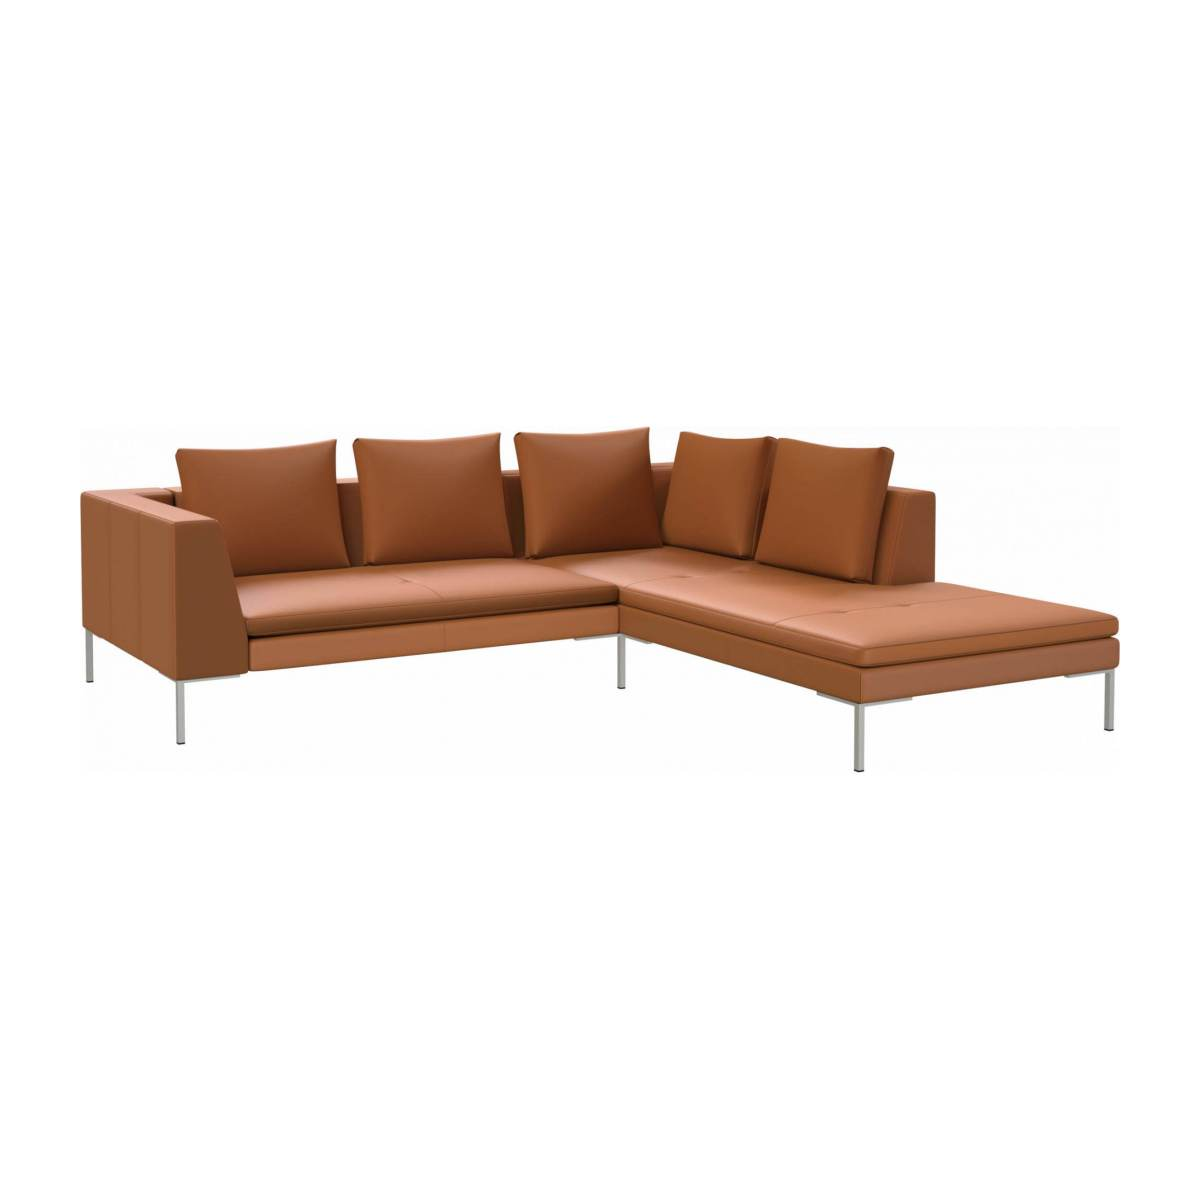 2 seater sofa with chaise longue on the right in Savoy semi-aniline leather, cognac  n°2